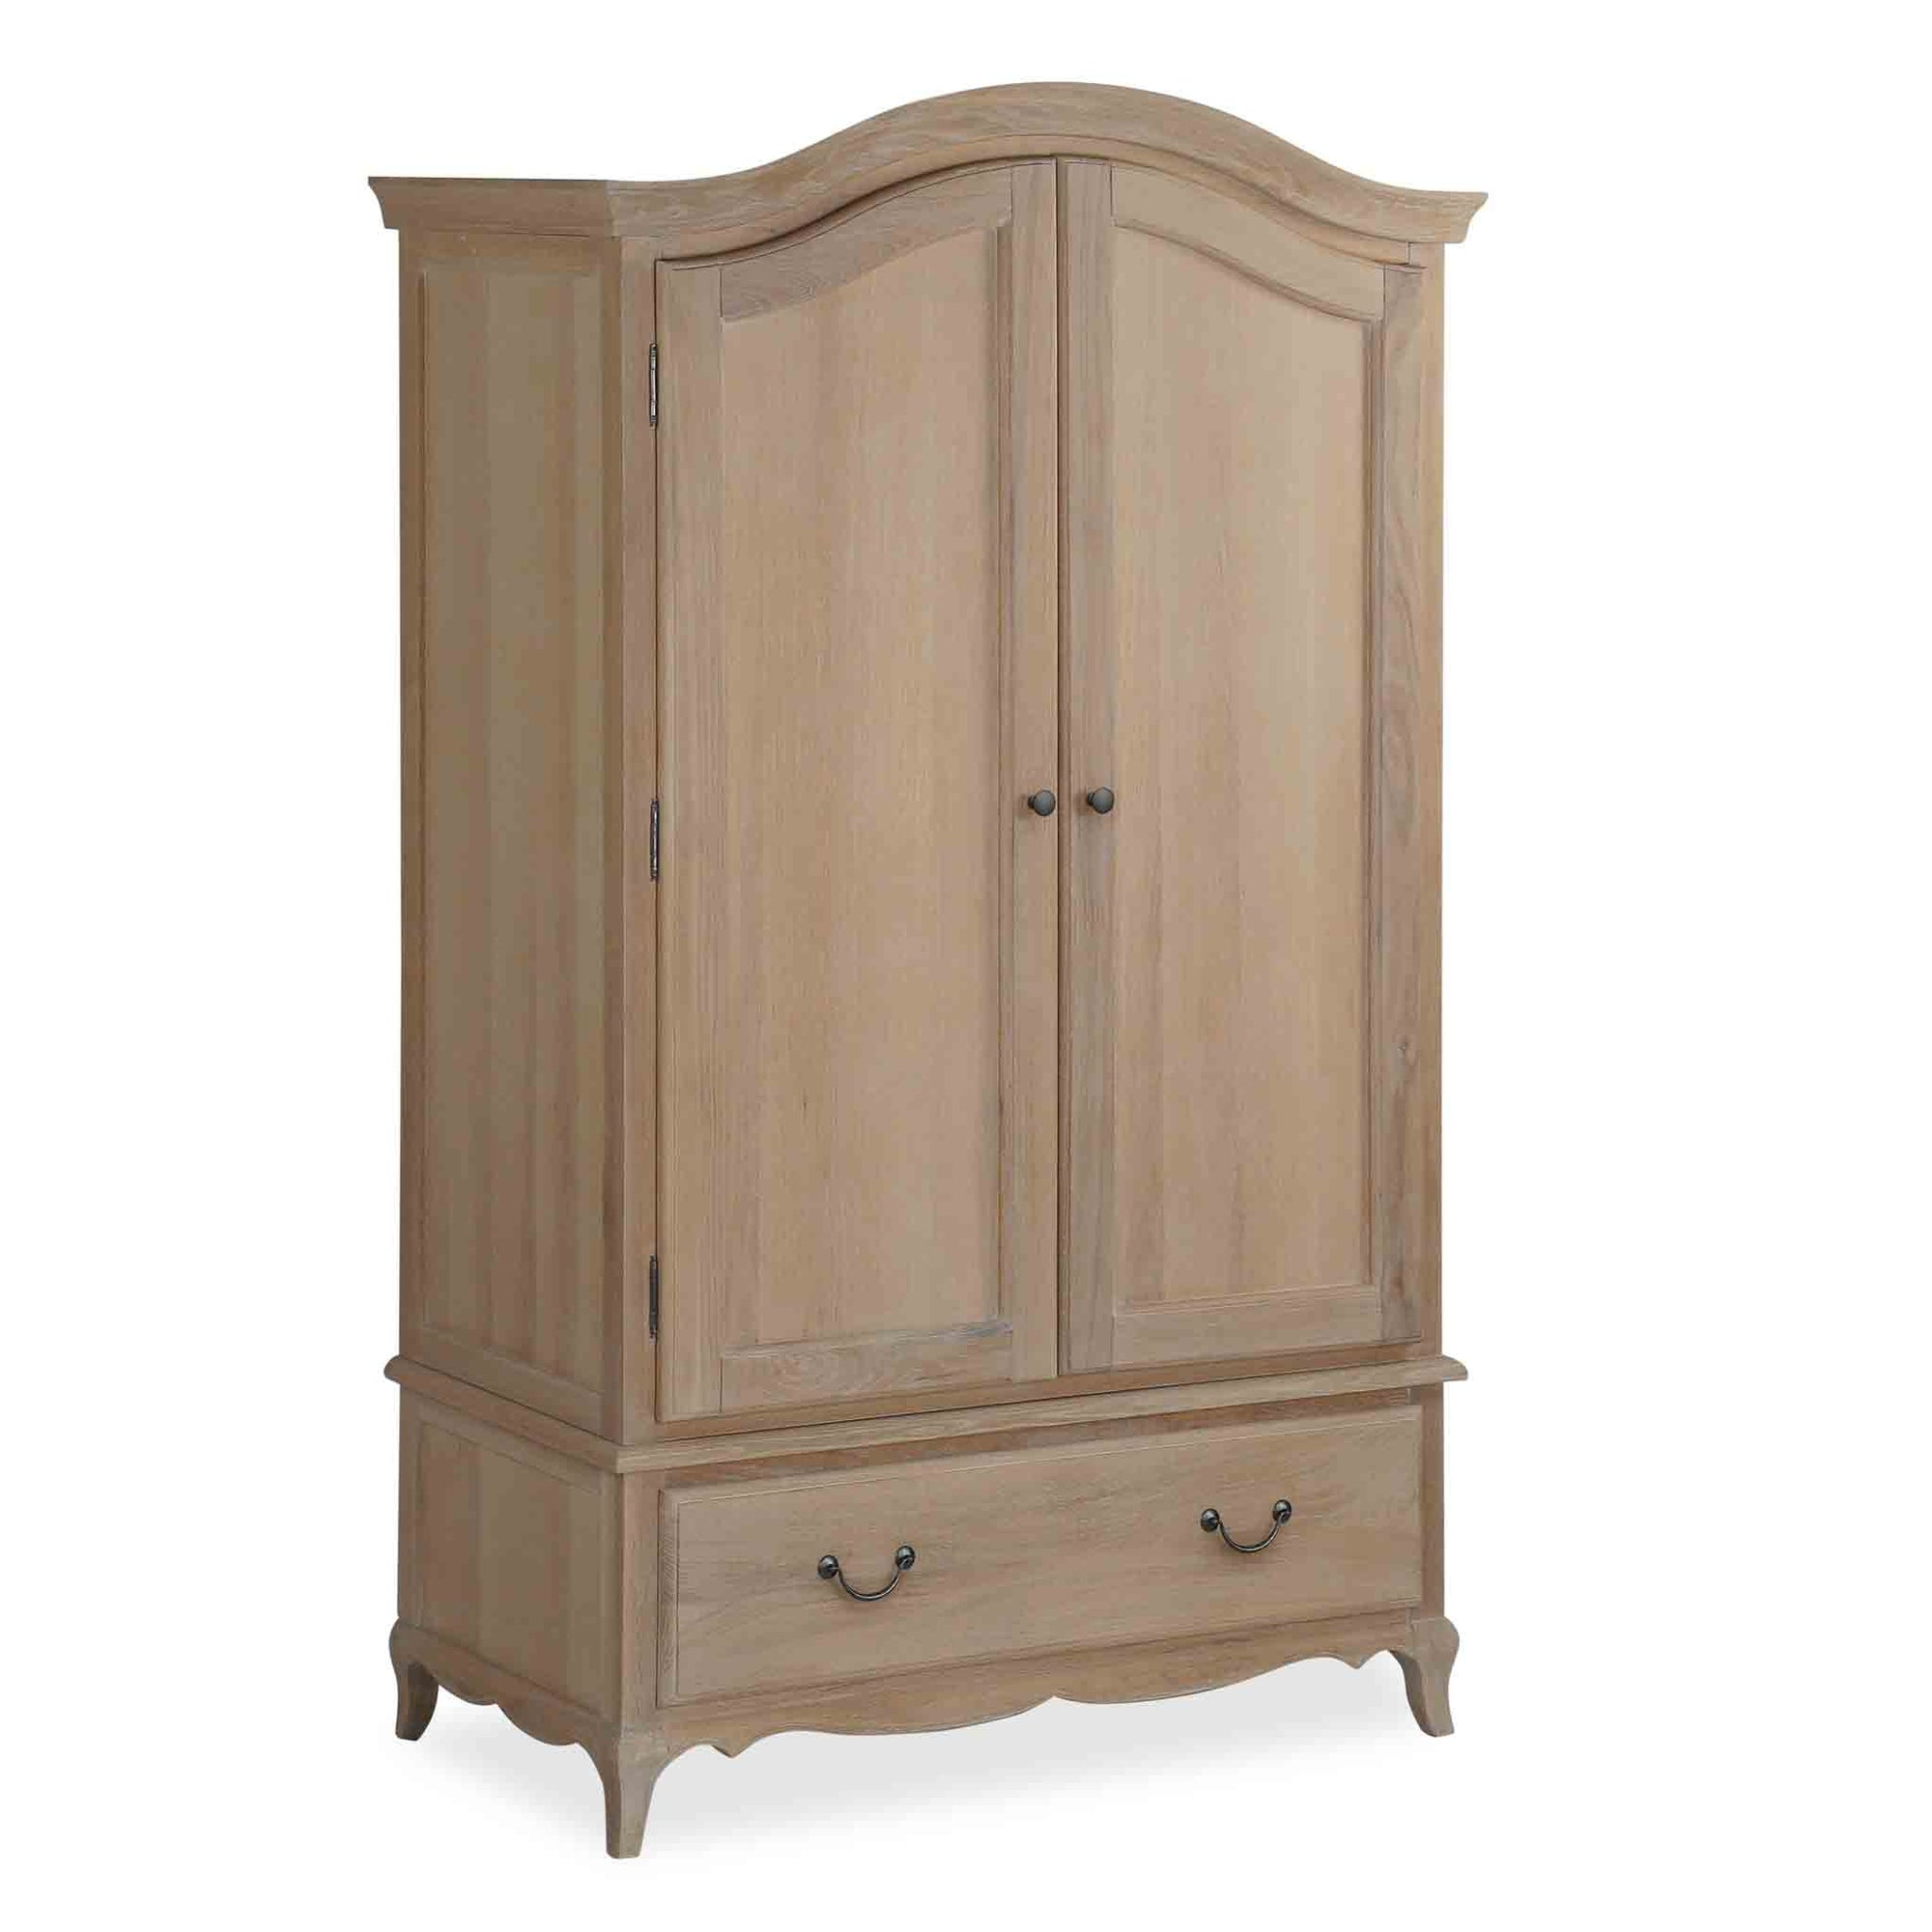 Harrogate Oak French Style Double Wardrobe from Roseland Furniture